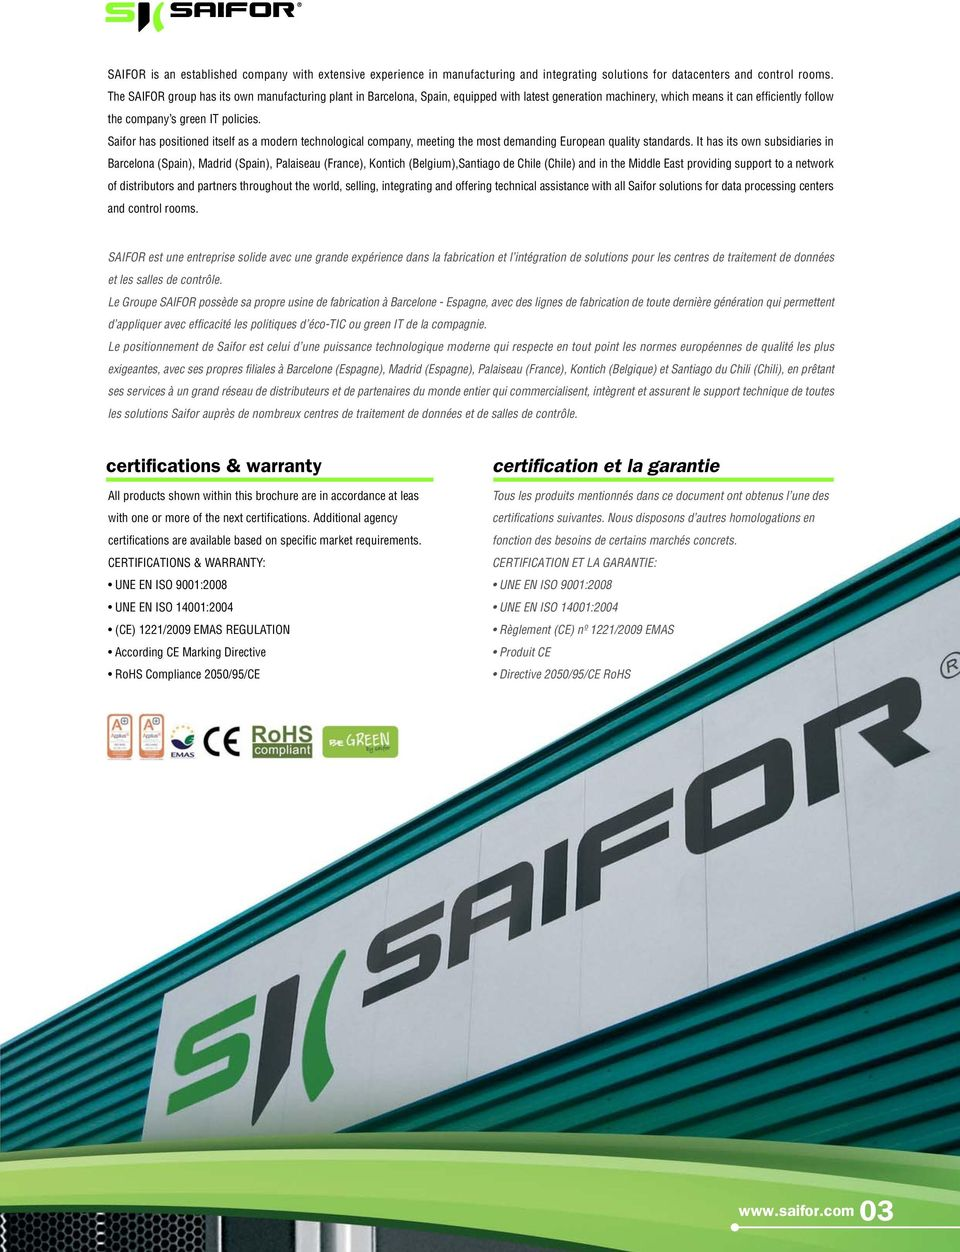 Saifor has positioned itself as a modern technological company, meeting the most demanding European quality standards.